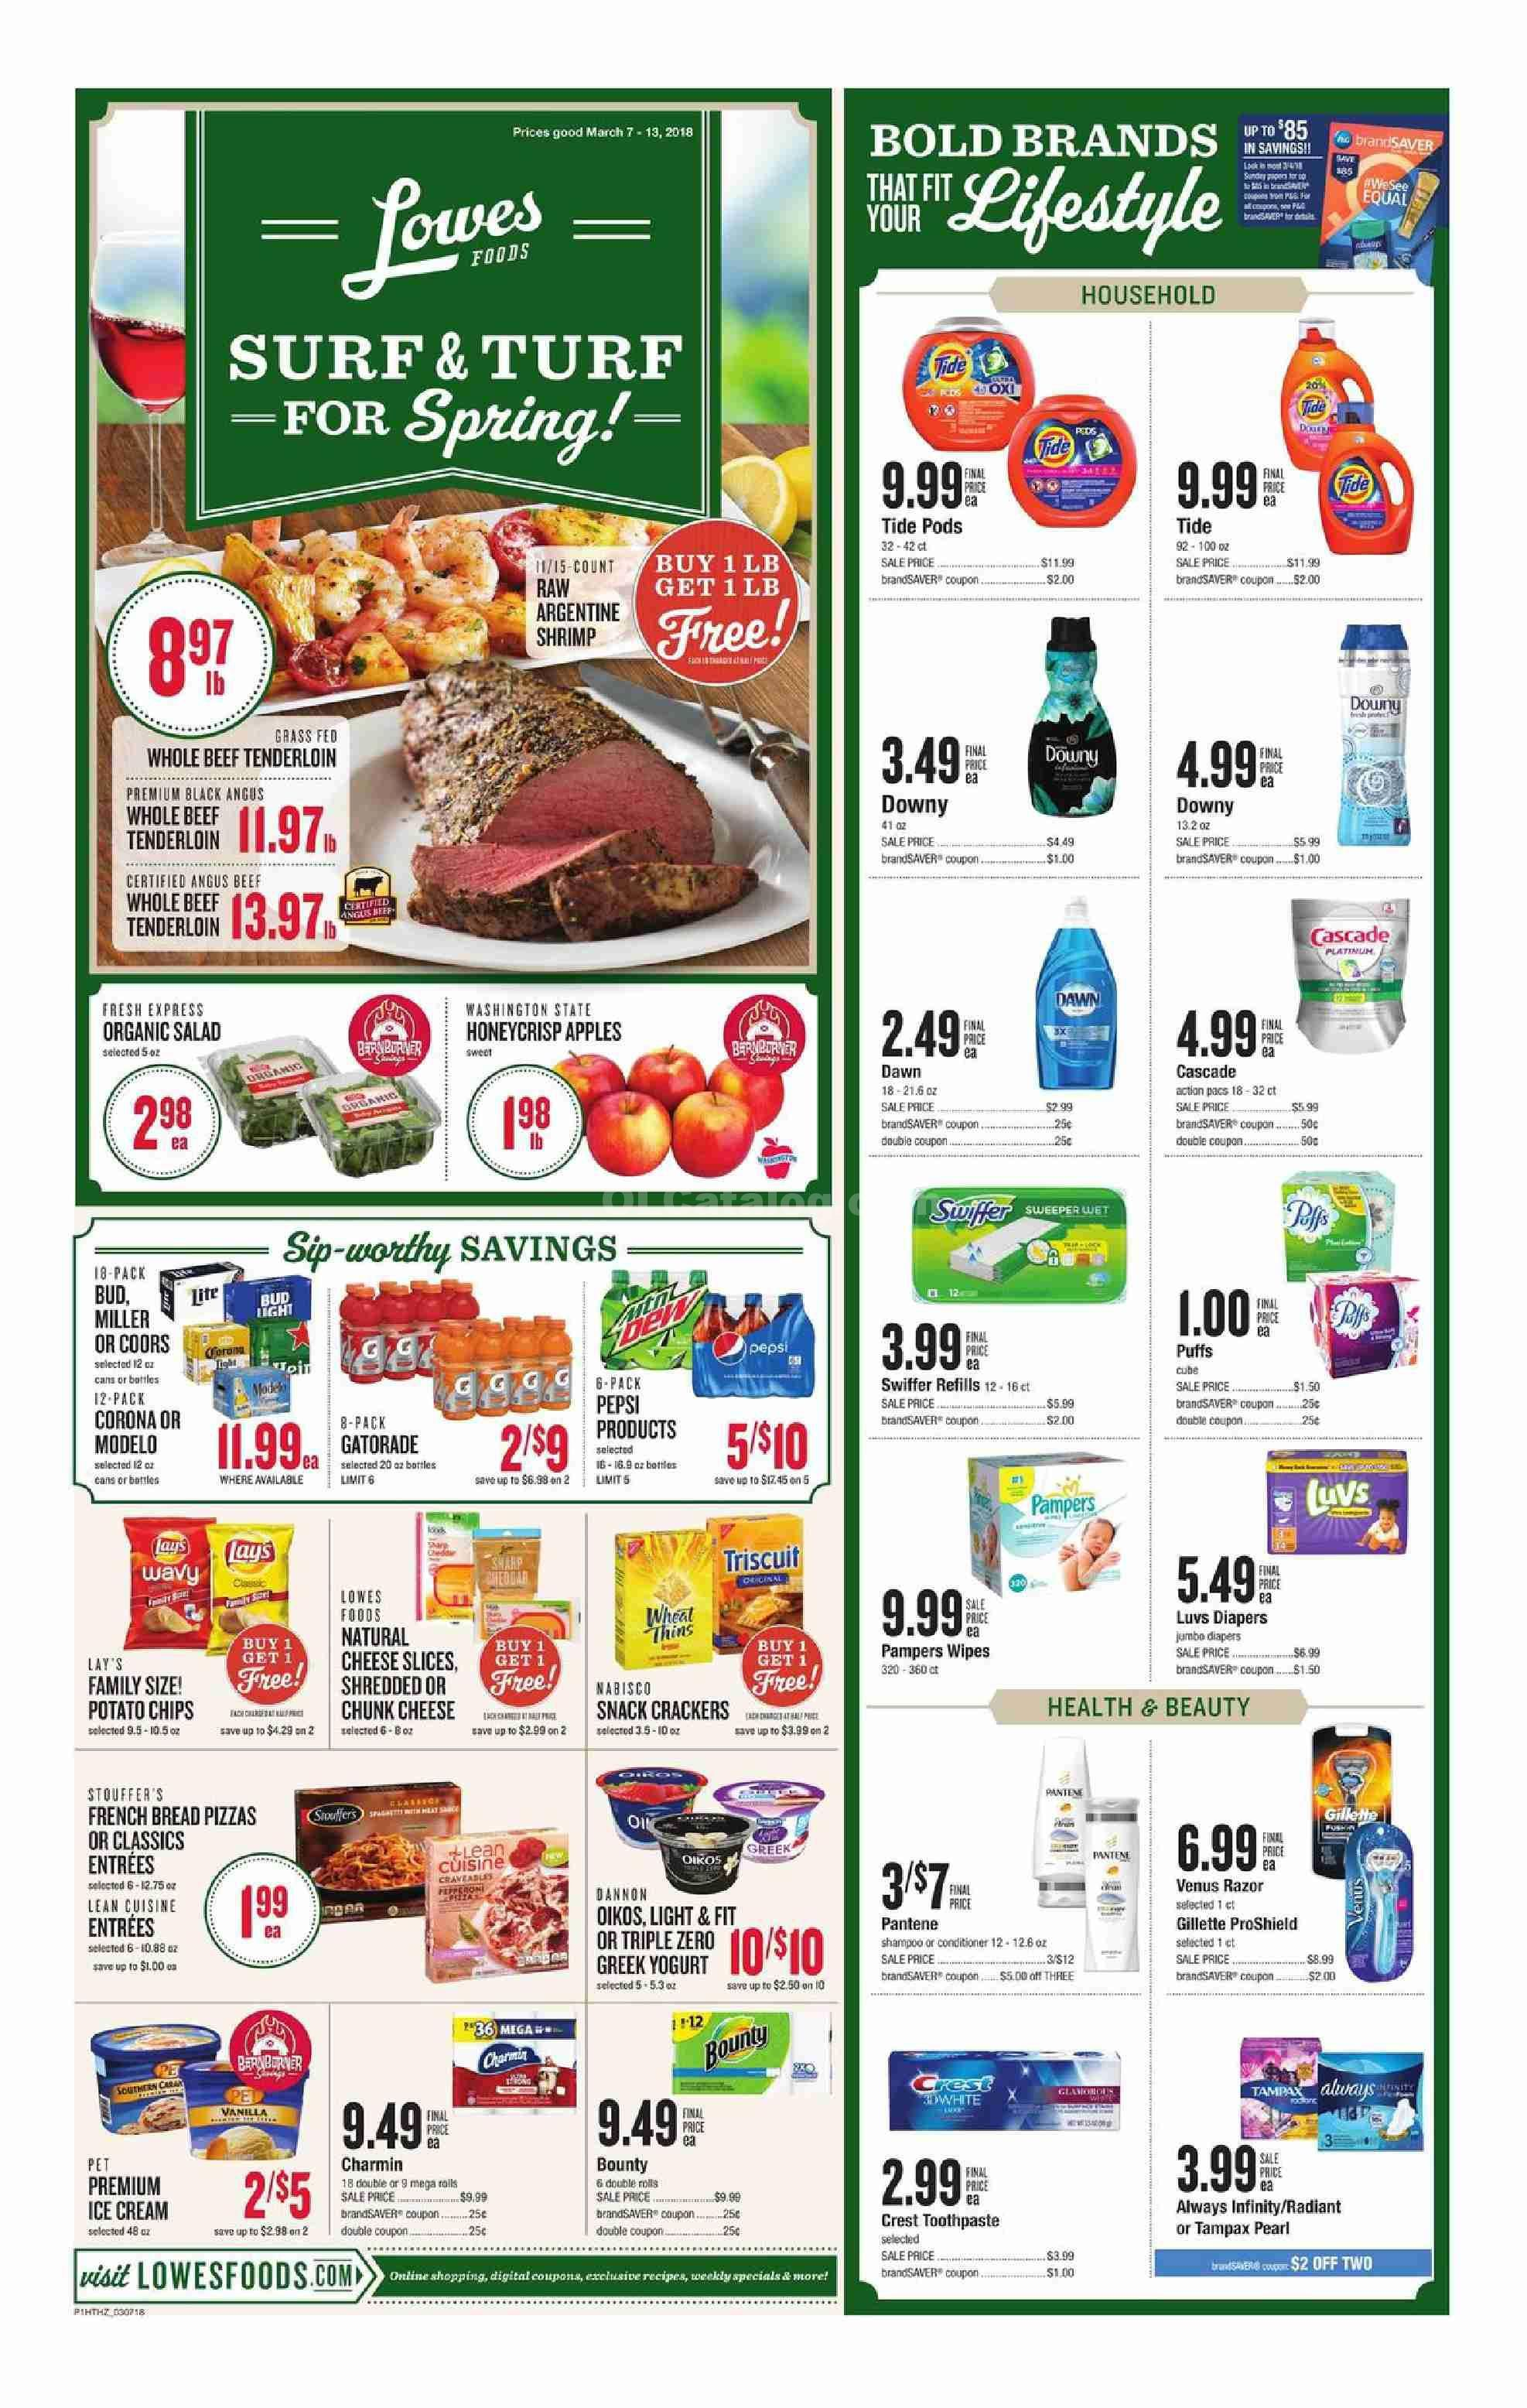 Pin by Michael Corcoran on Circular Designs Grocery ads